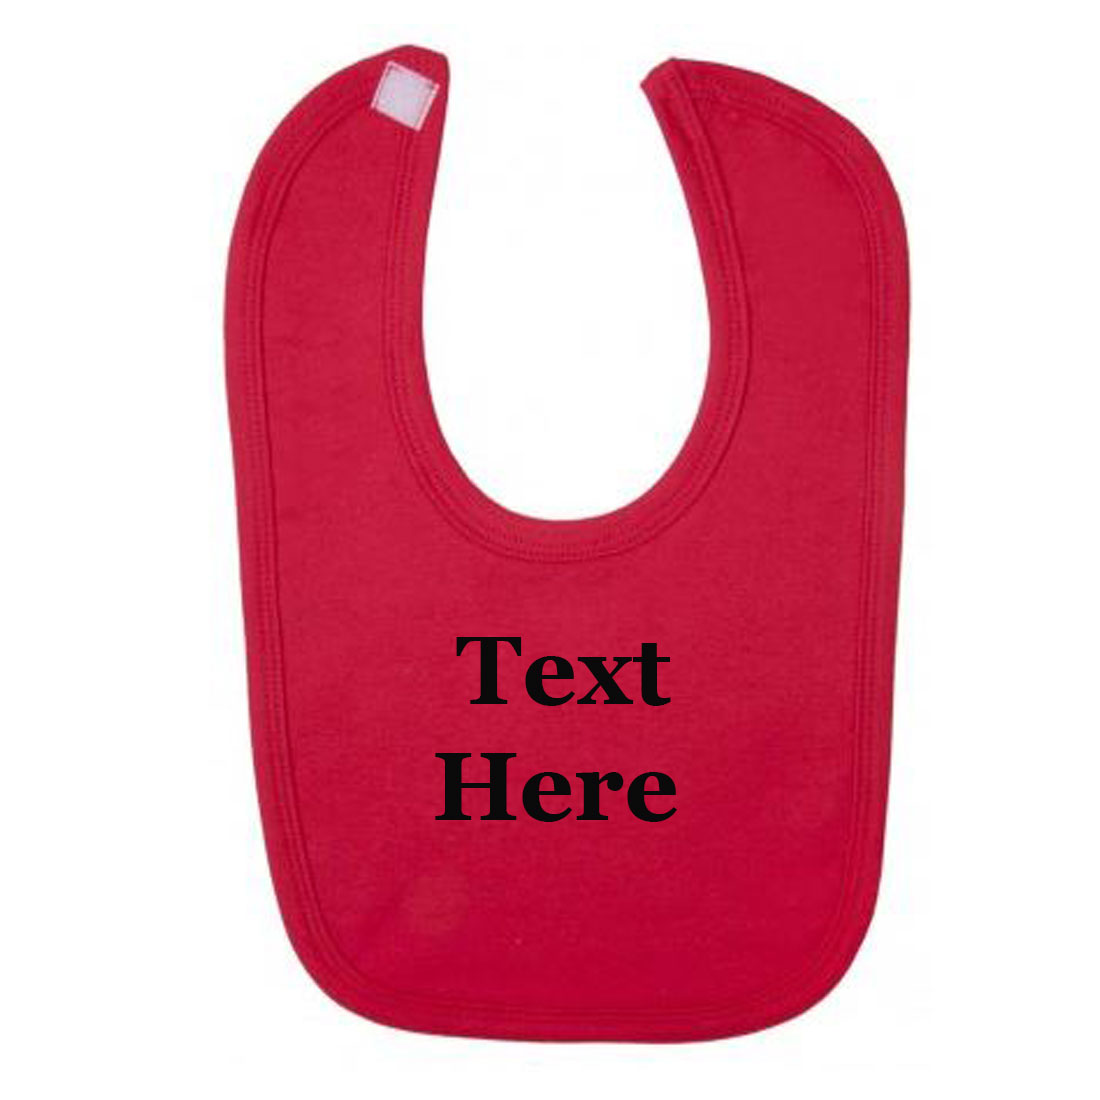 Embroidered Red Baby Bib